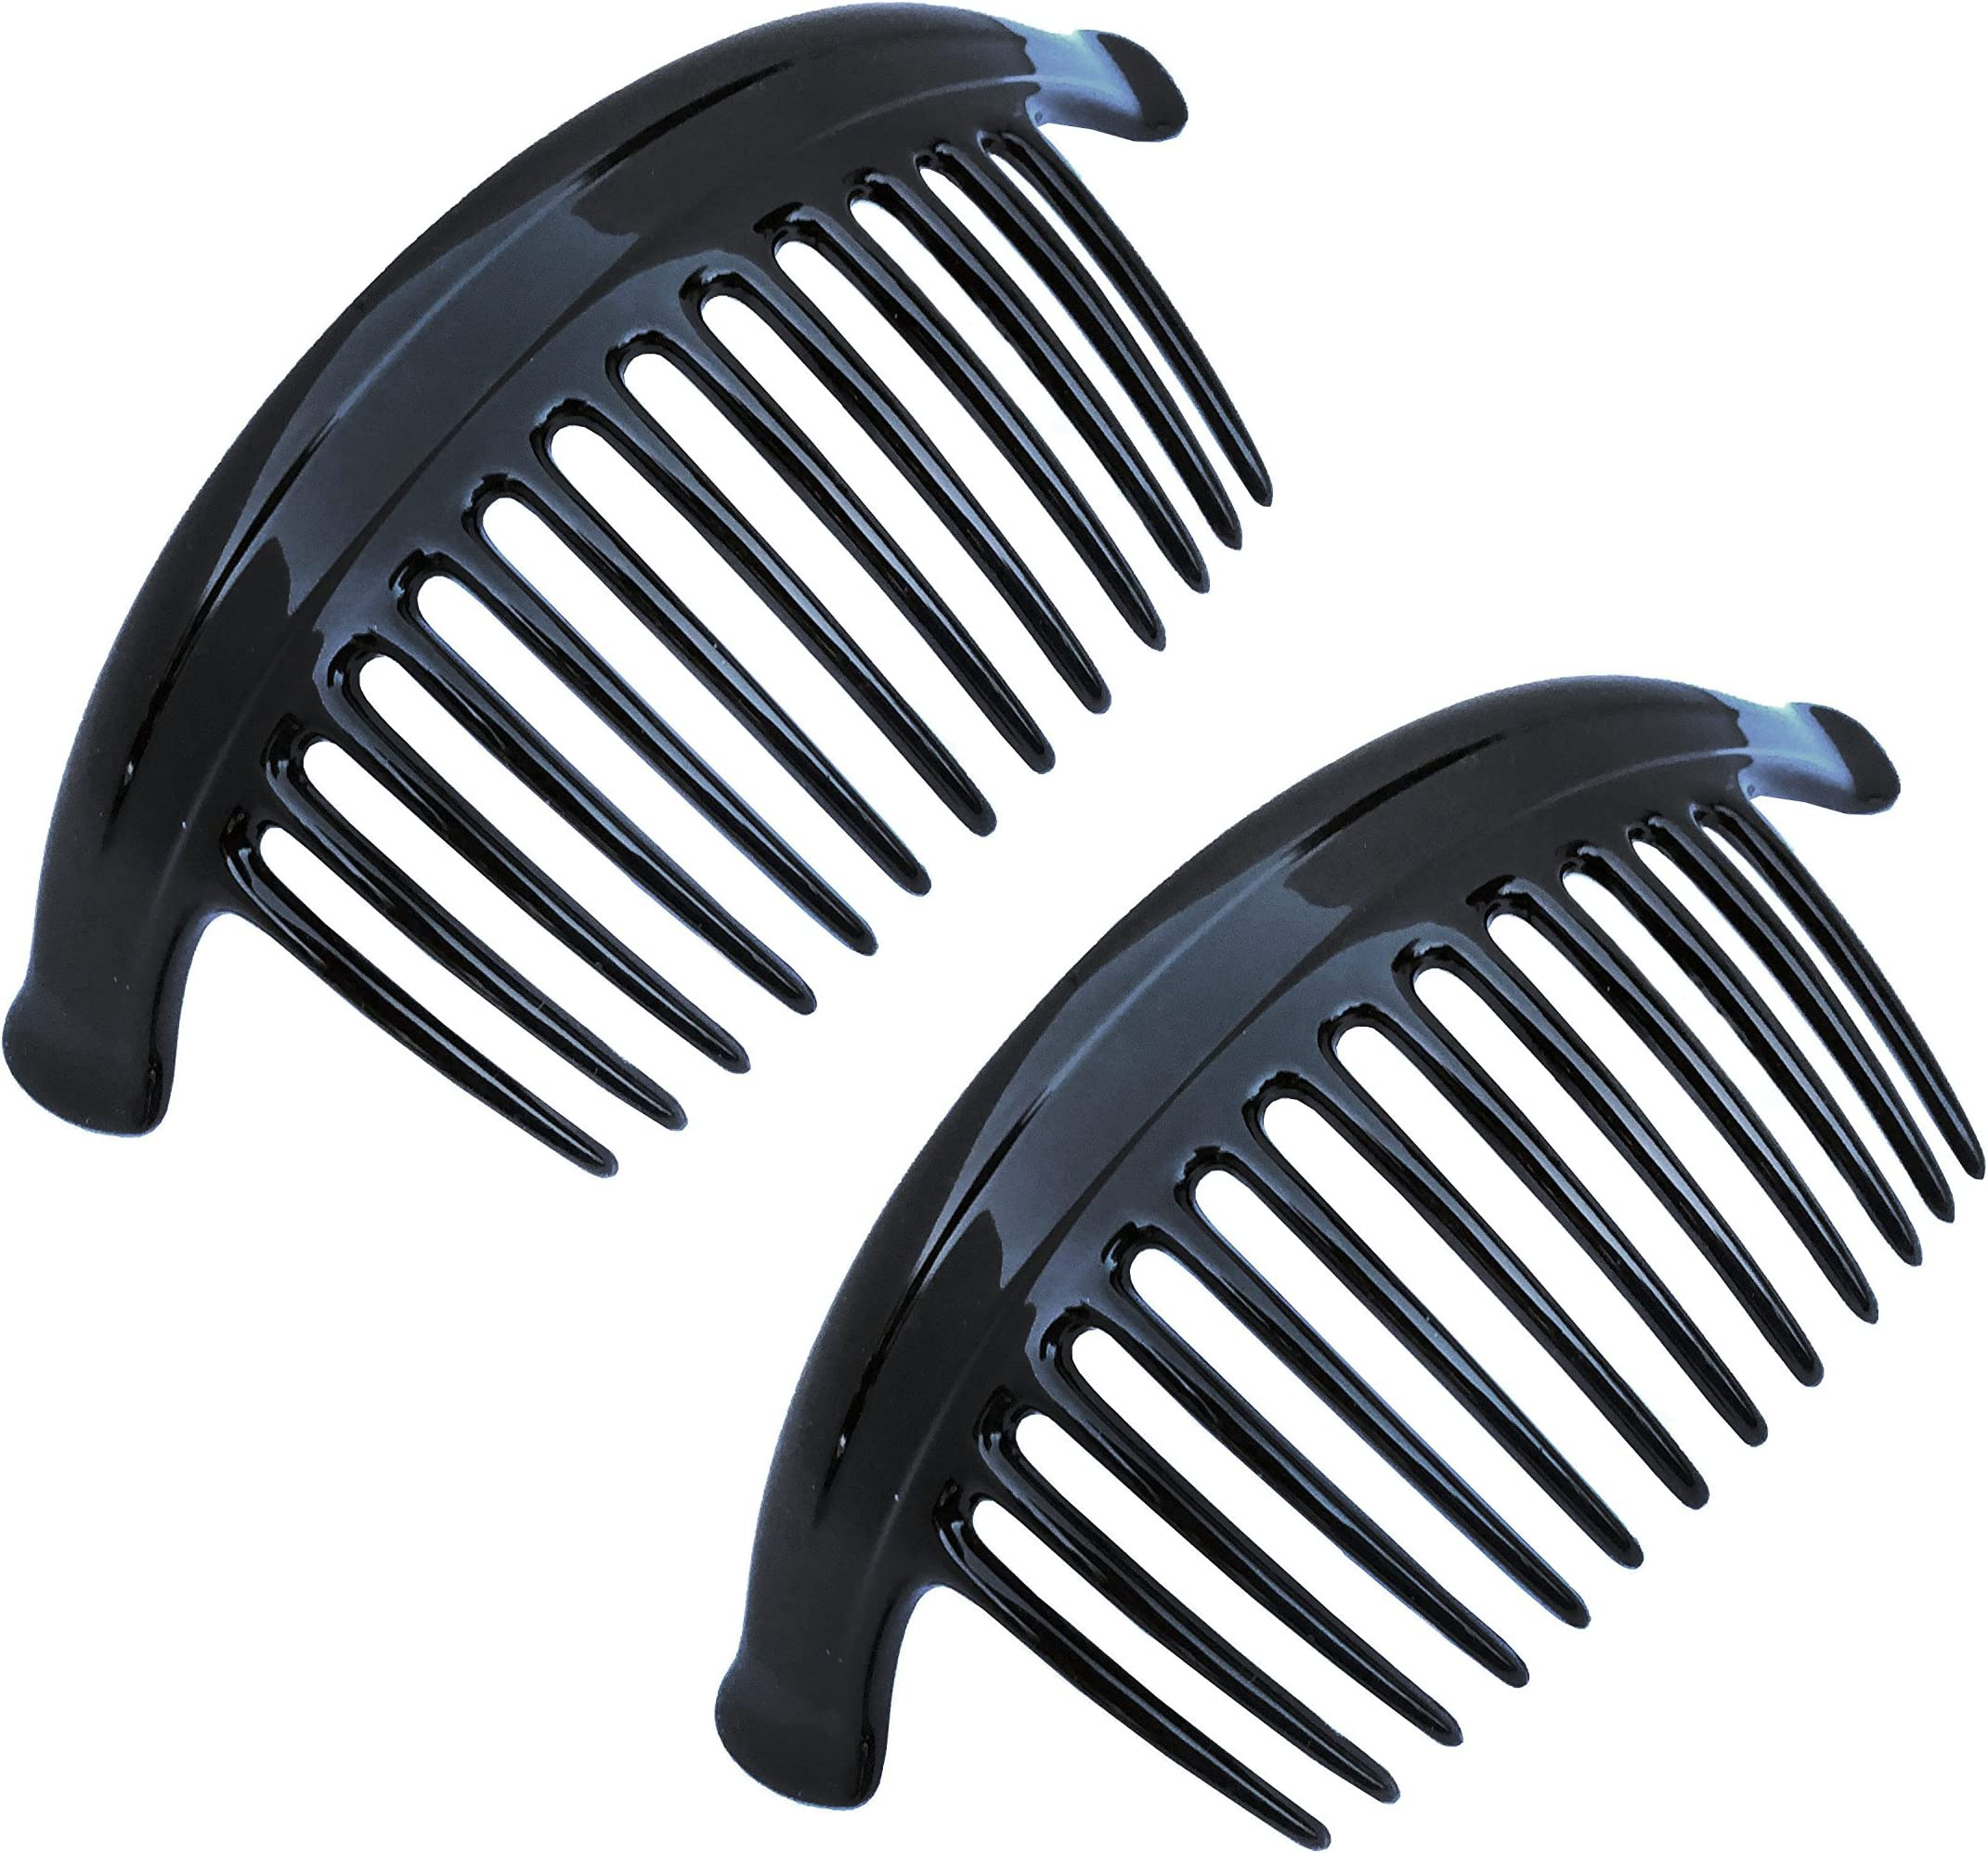 Parcelona French Lip Interlocking Large 9 Teeth Cellulose Shell Side Hair Combs